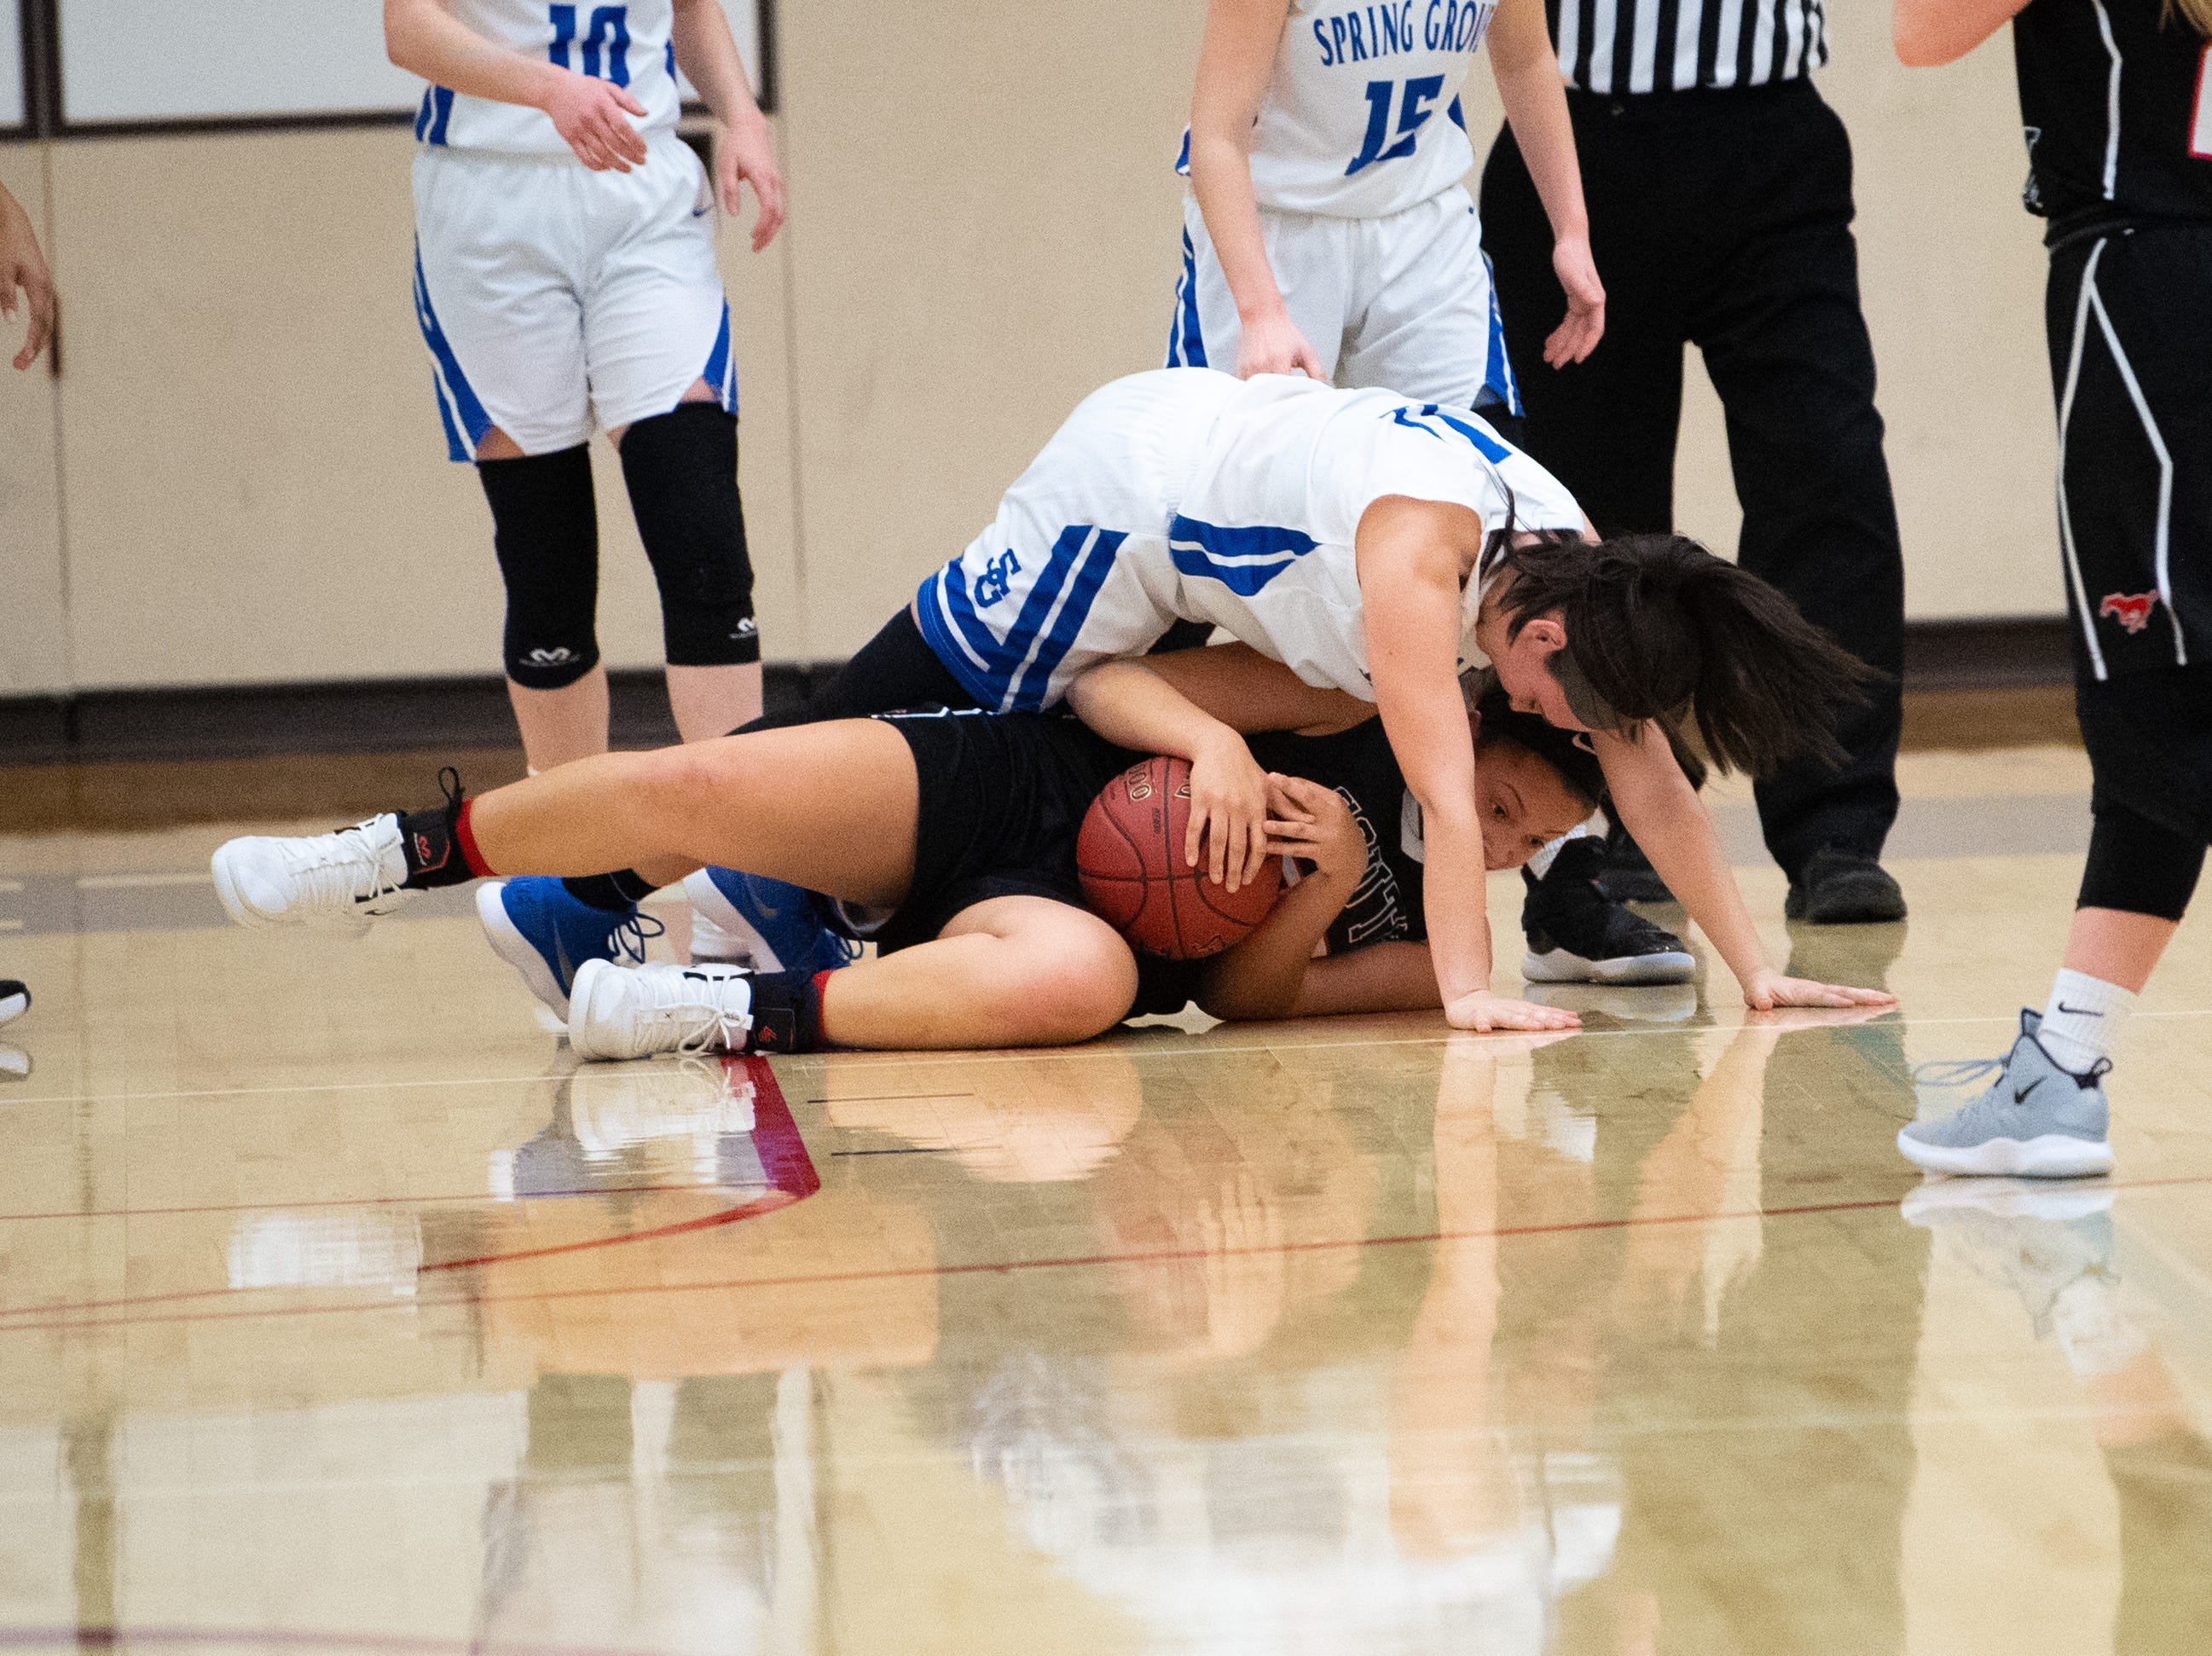 Ali St. Rose (25) of South Western secures the ball during the girls' basketball game between Spring Grove and South Western, Friday, January 11, 2019. The Rockets defeated the Mustangs 51 to 38.